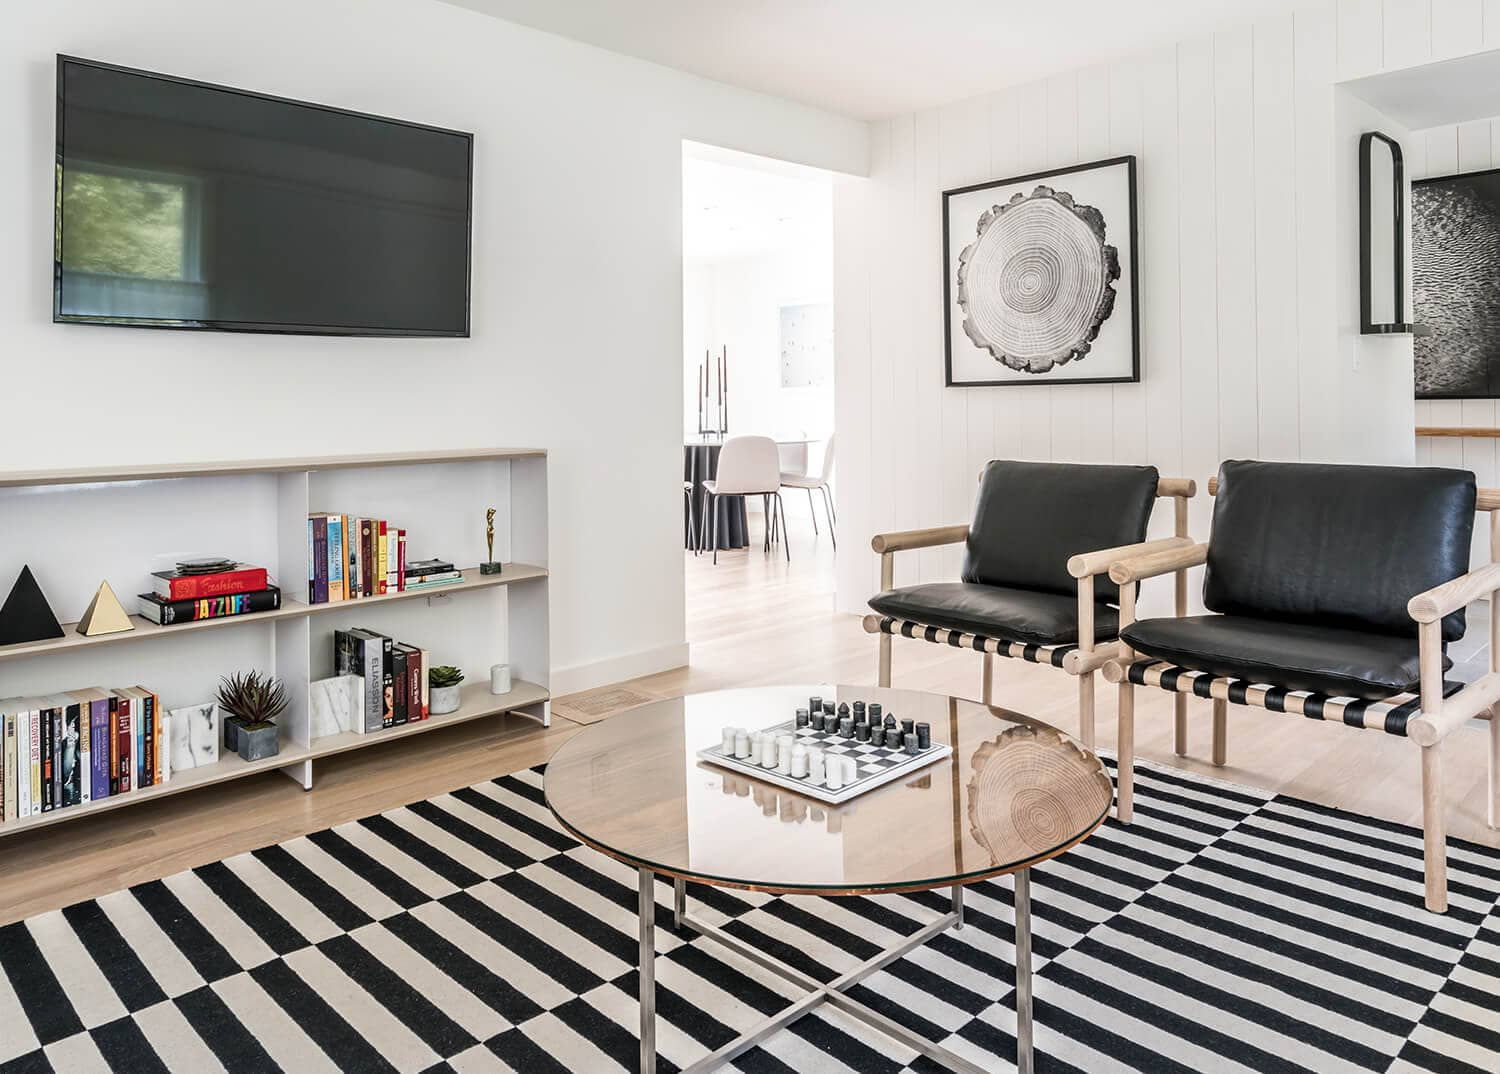 A contemporary living area with modern furniture and black-and-white decor, including a bold area rug. Mountainside Sober House.